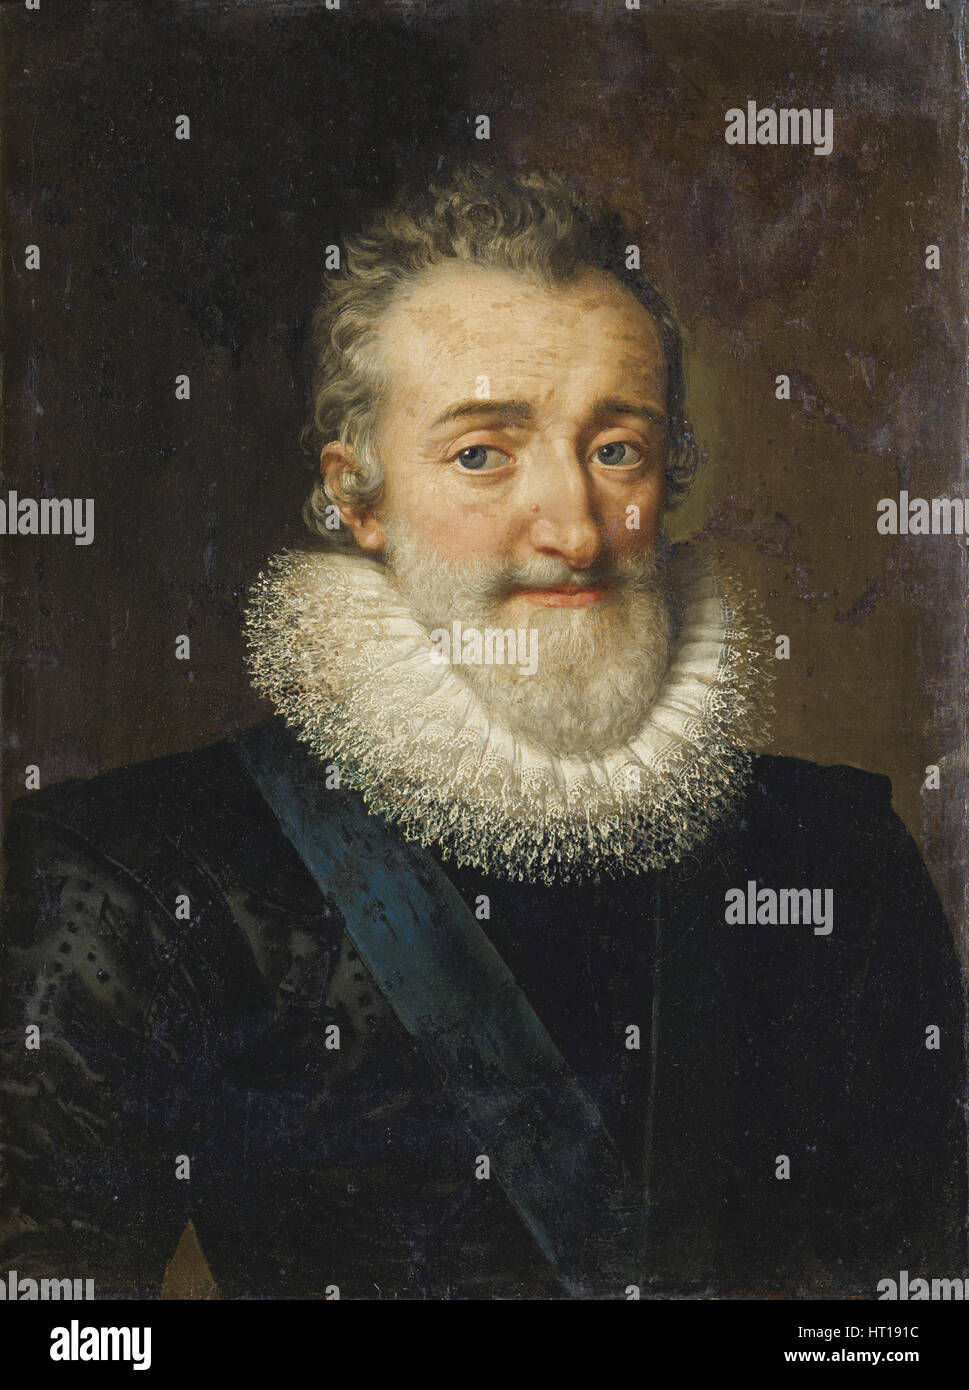 King Henry IV of France, 1610. Artist: Pourbus, Frans, the Younger (1569-1622) - Stock Image